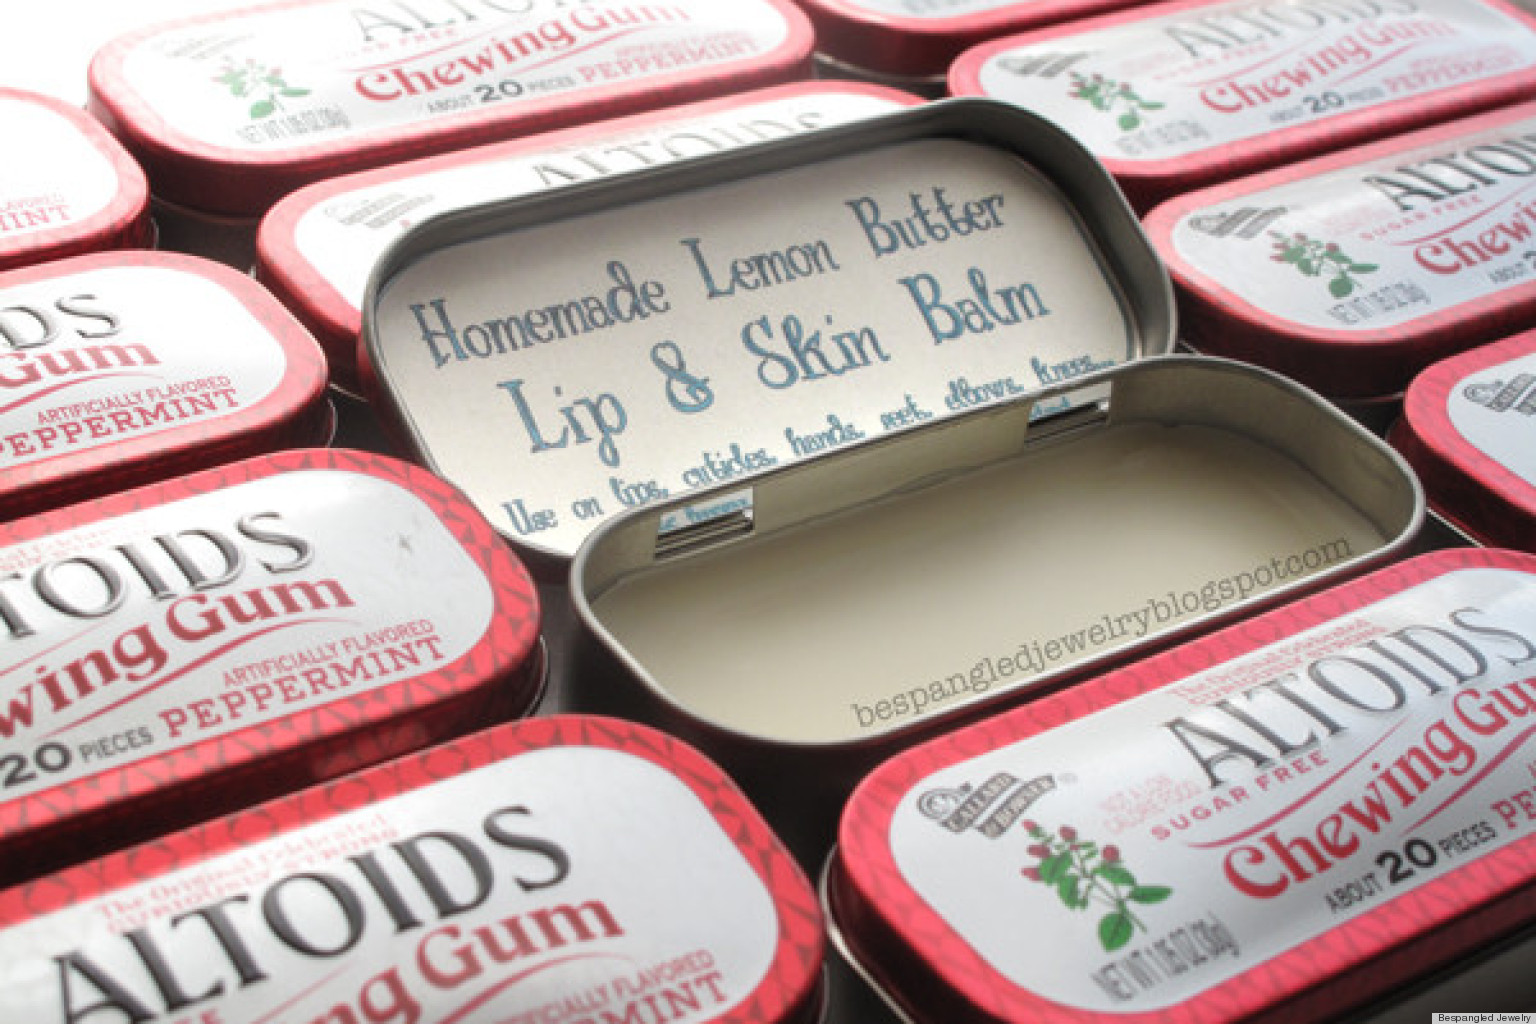 valentine's day gift ideas: a diy lemon lip balm made in an altoid, Ideas